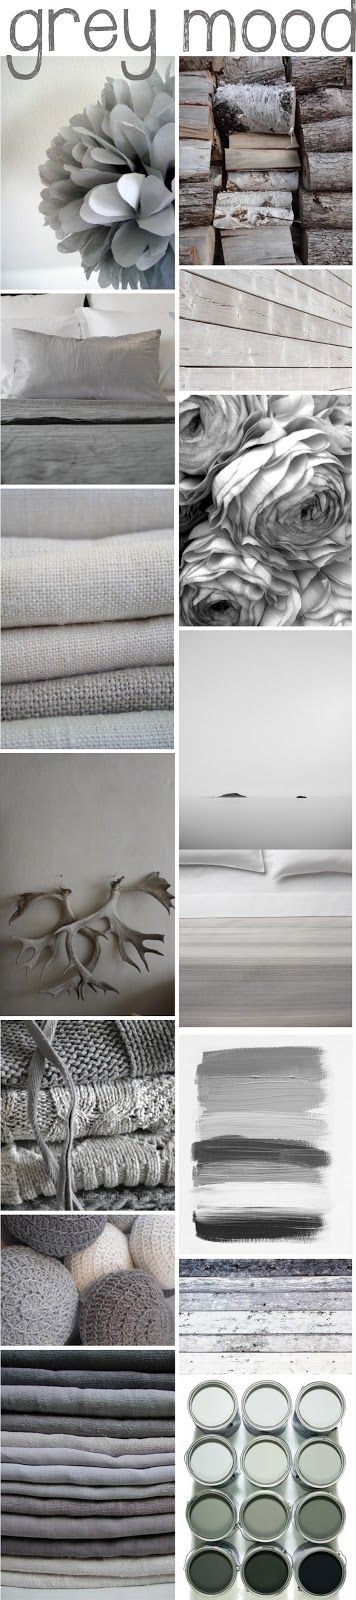 Grey Mood, See more inspirations at http://www.brabbu.com/en/inspiration-and-ideas/ #MoodBoardIdeas #MoodBoardDesign #MoodBoardFashion